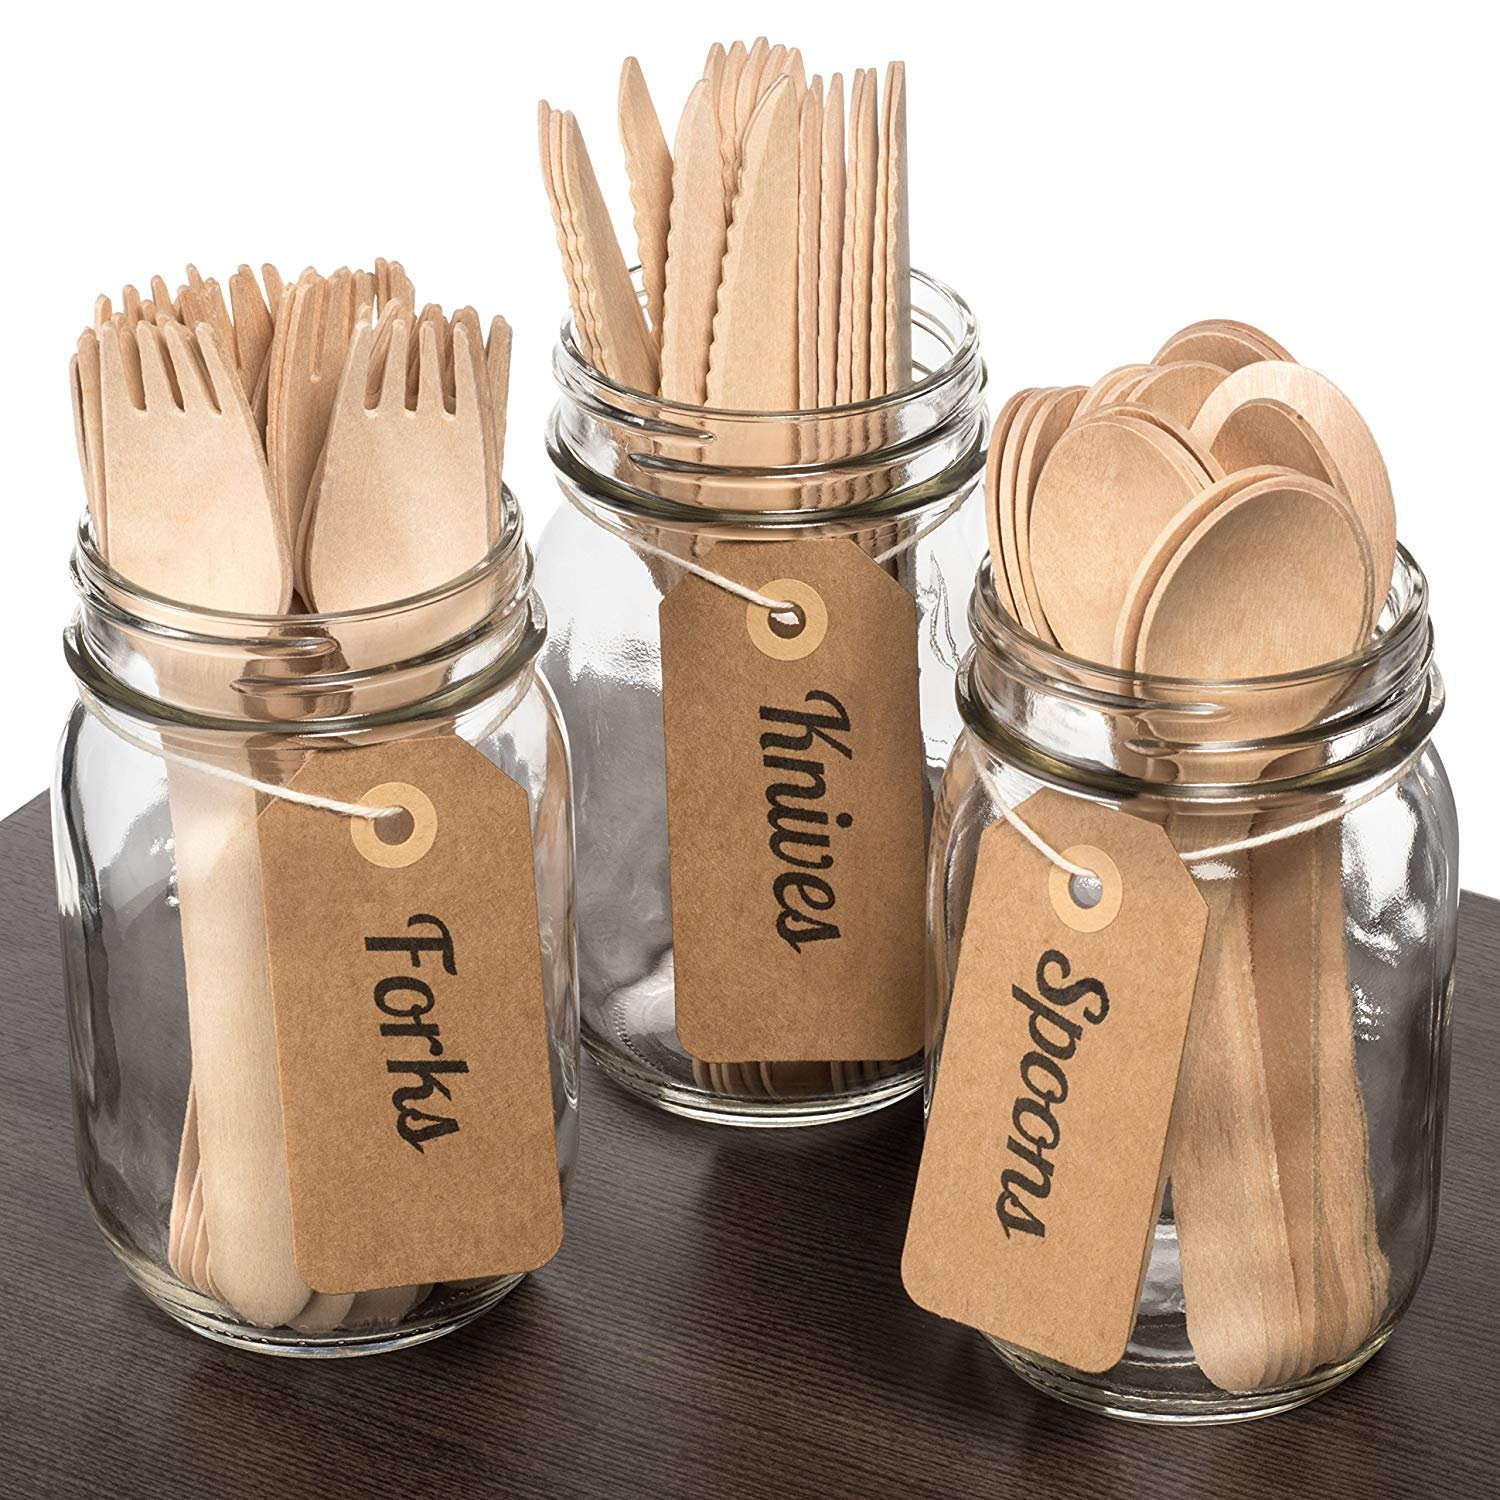 Wood set cutlery biodegradable-disposable-eco friendly-100 wooden forks-100 knives-100 spoons-For Parties, Picnics, Events & Weddings – Durable & Environmentally Safe by OFO WOOD (Image #6)